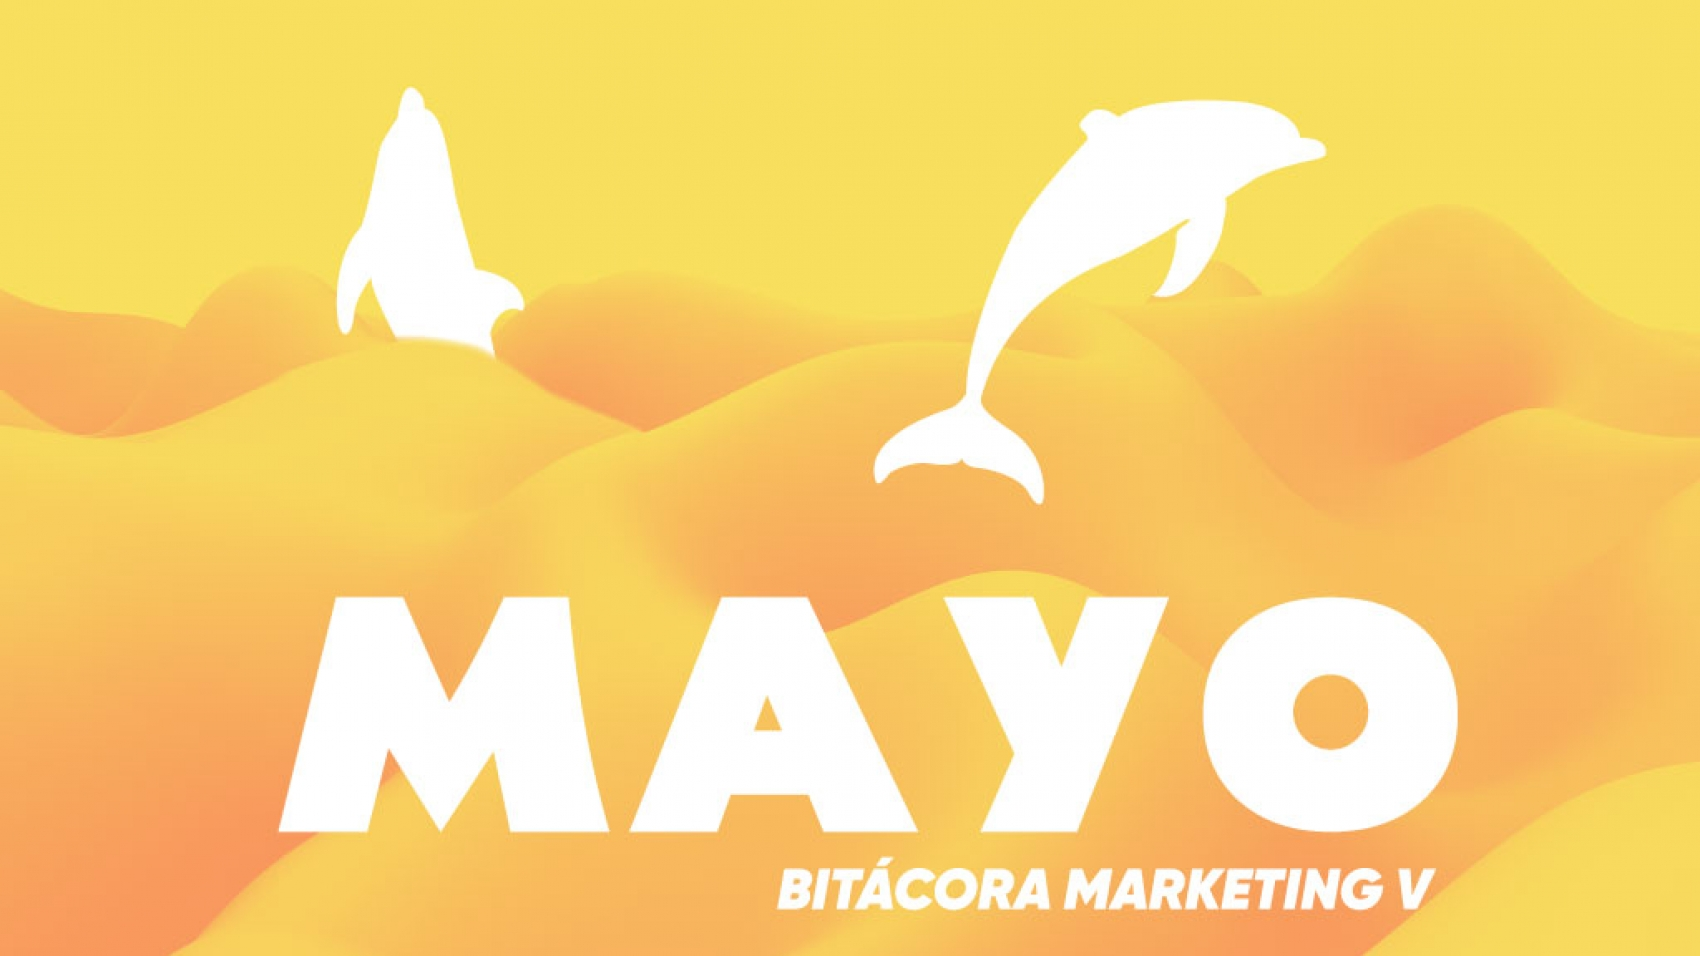 blog imagen de plan de marketing de mayo